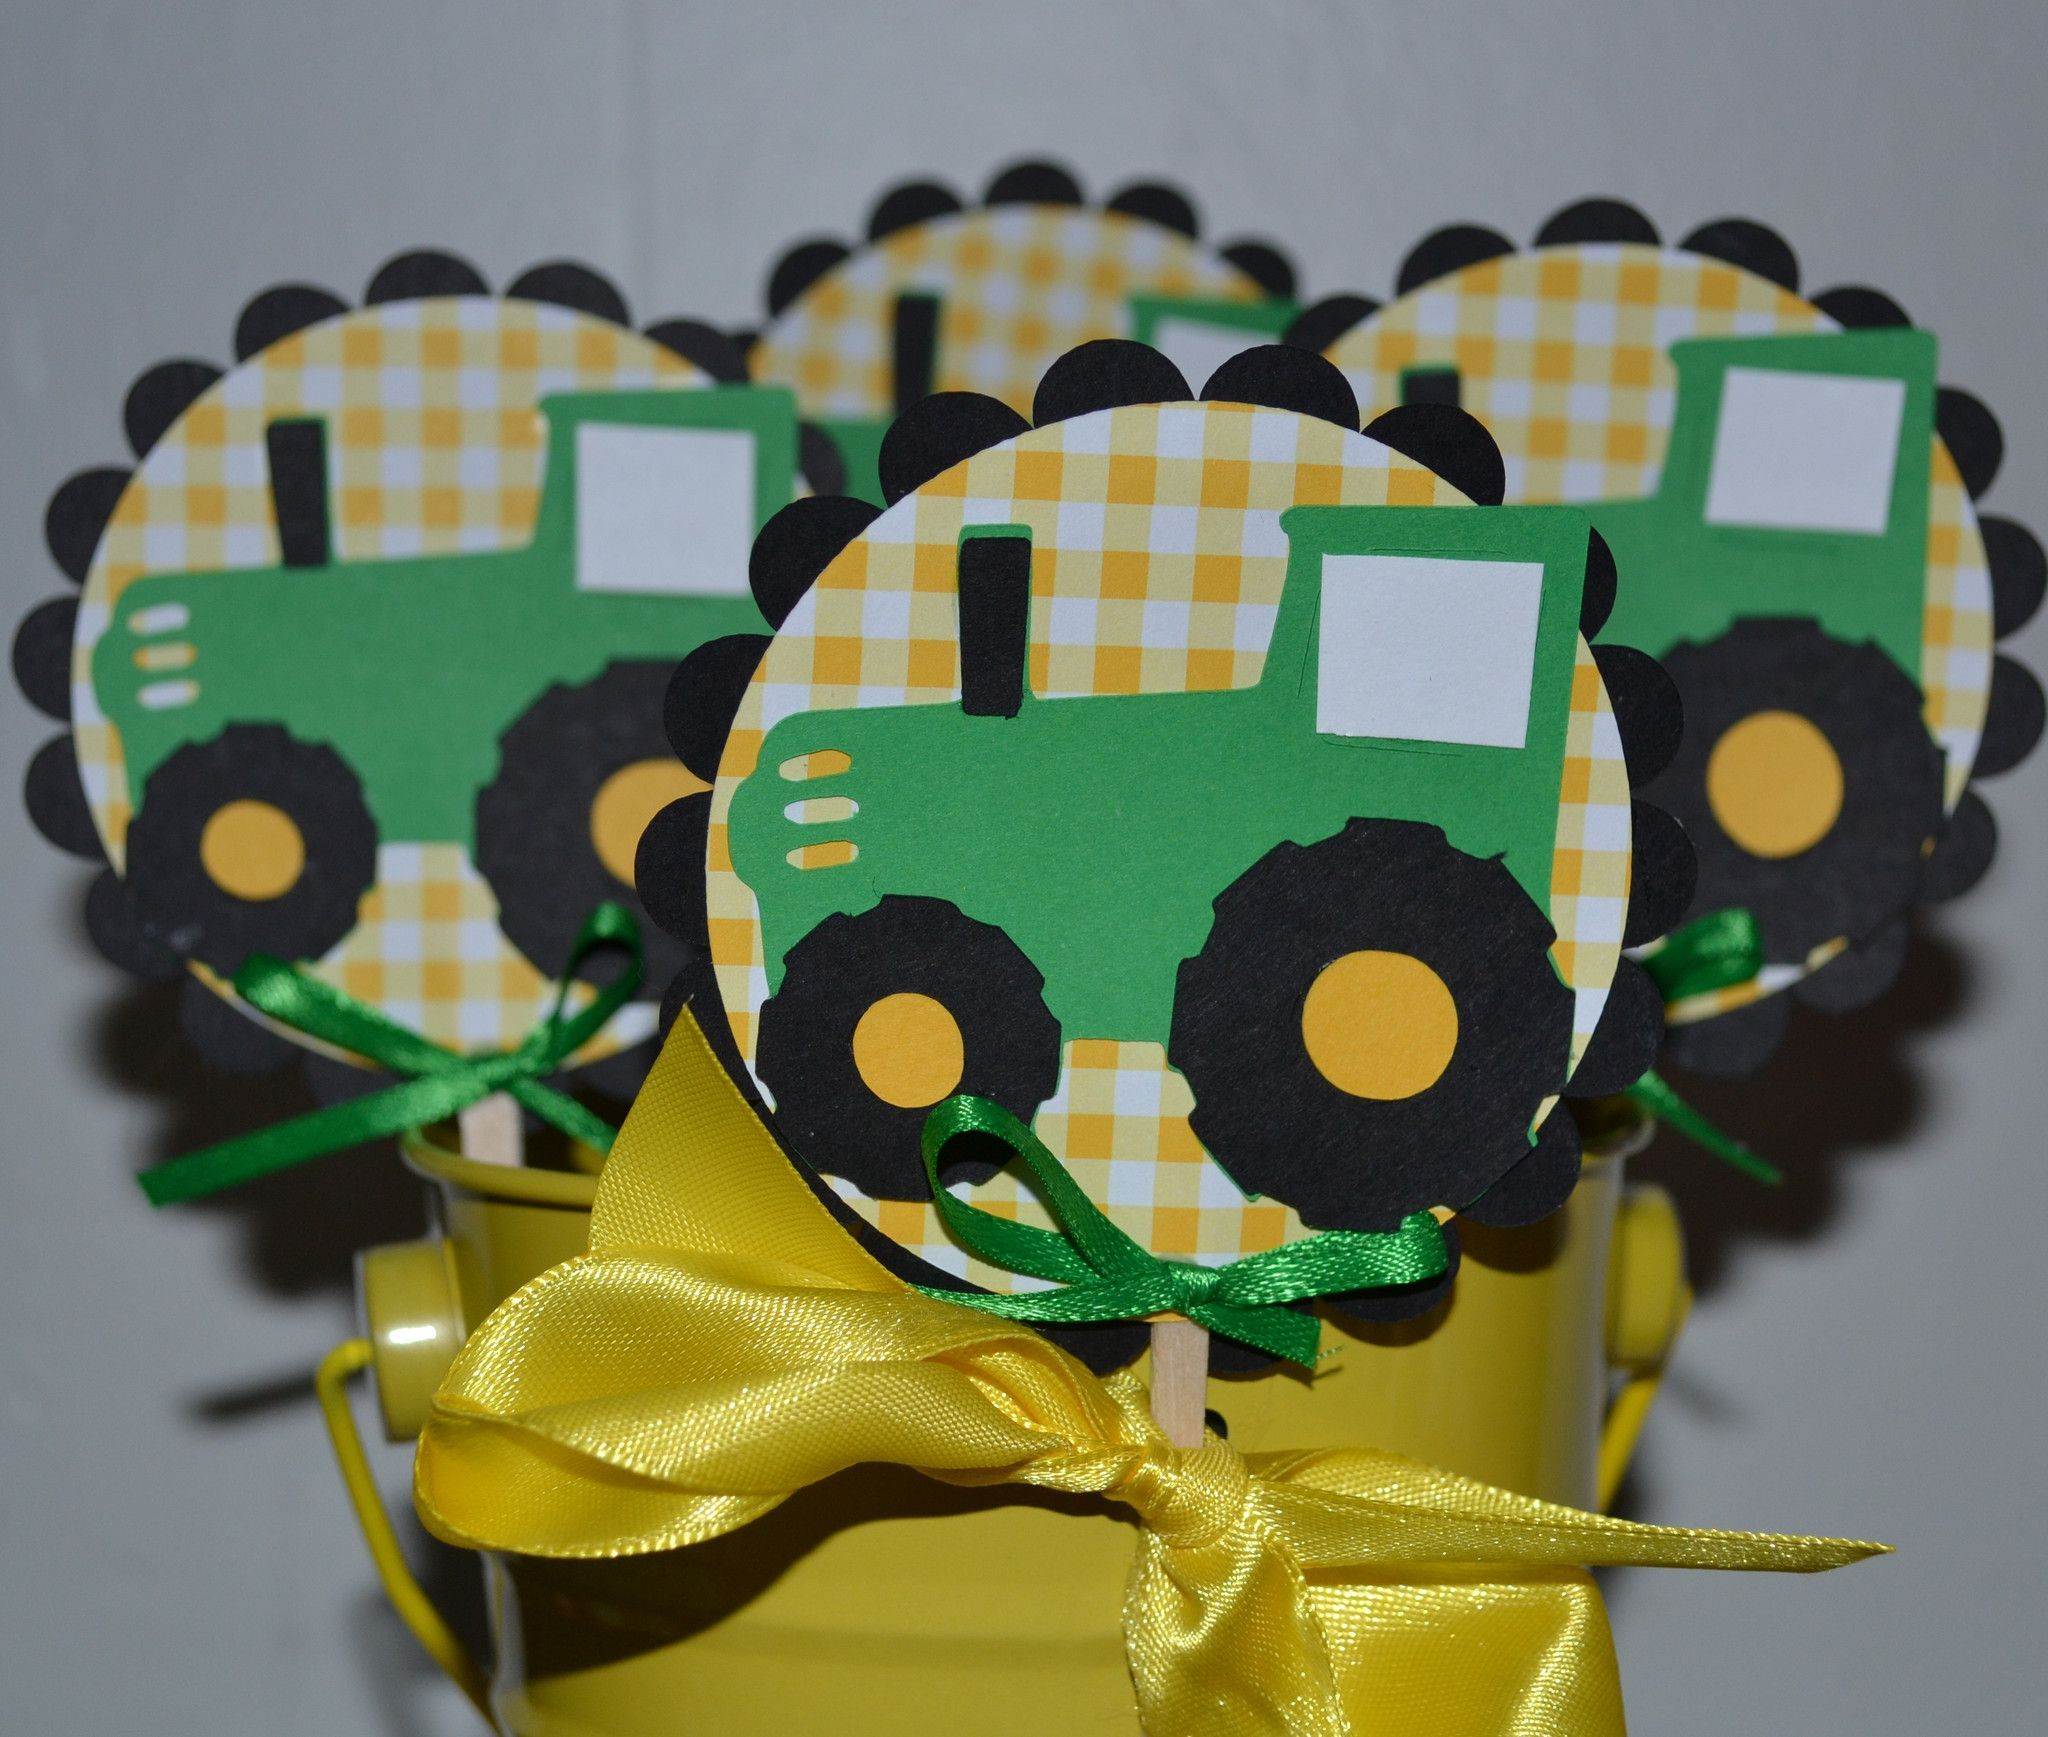 Deere Green Tractor Farm Themed CupCake Toppers (Set of 12)